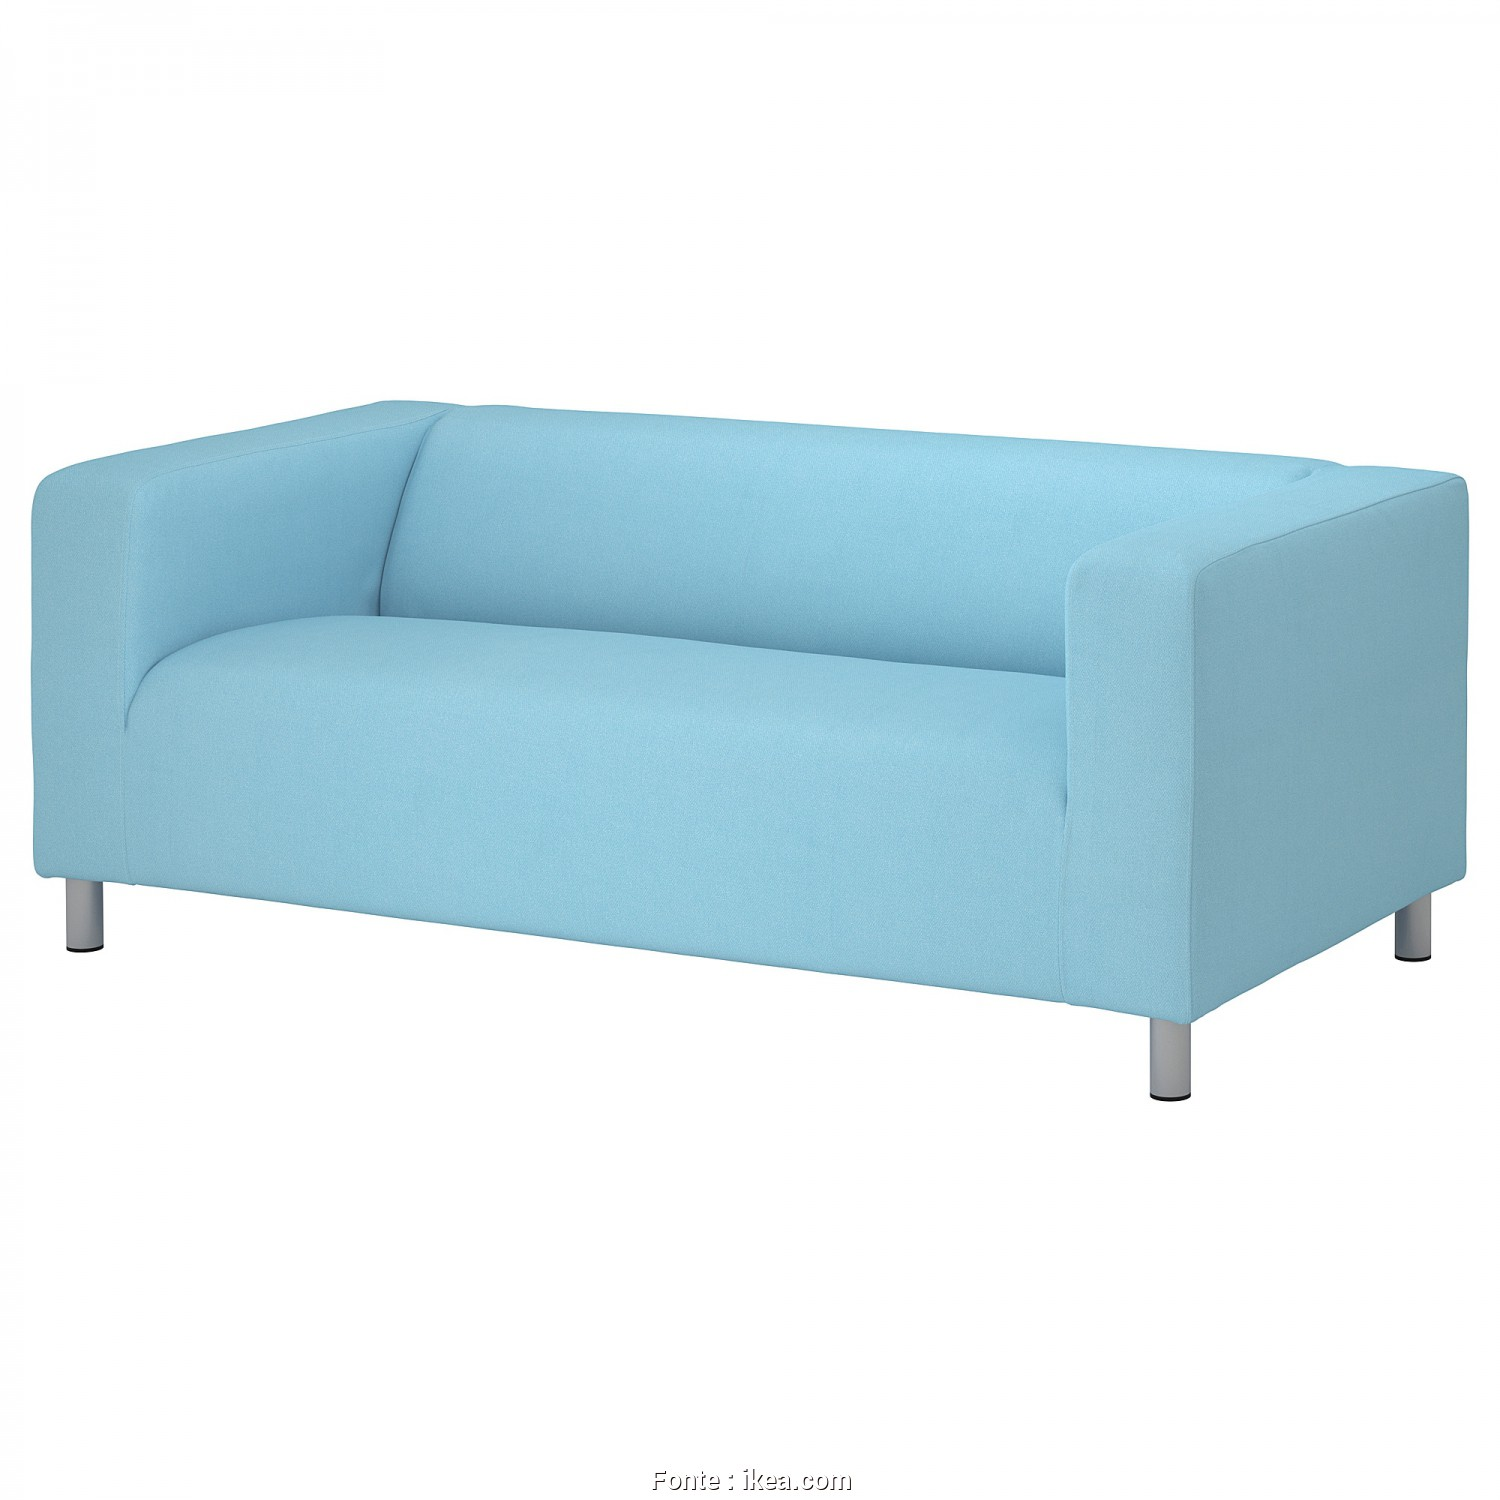 Ikea Klippan 2 Seater, Esclusivo IKEA KLIPPAN 2-Seat Sofa, Cover Is Easy To Keep Clean Since It Is